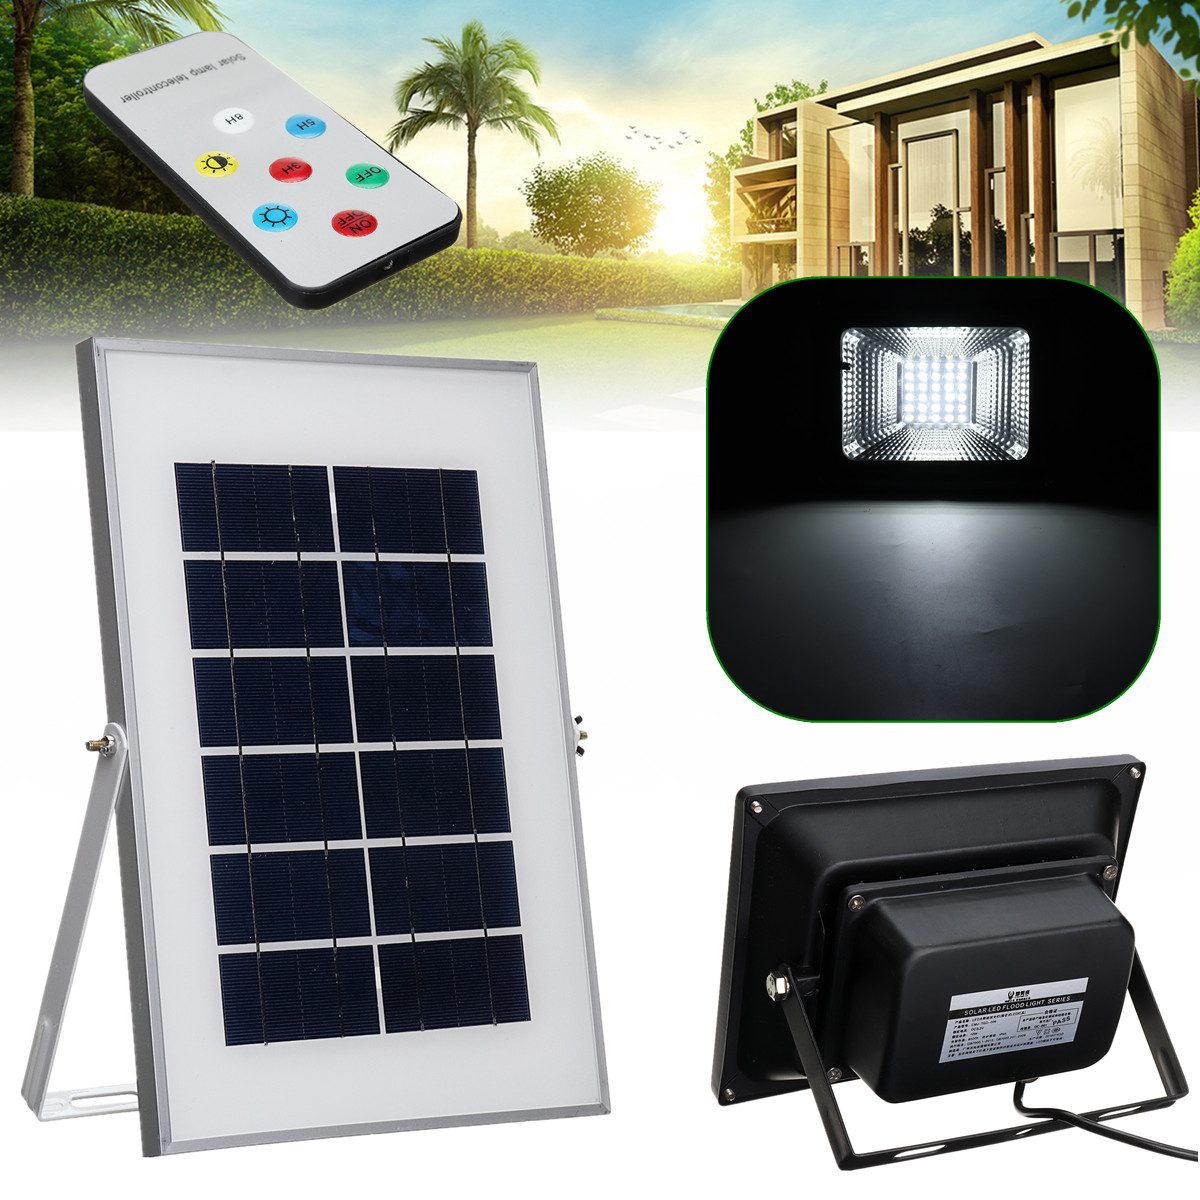 10W 30 LED Solar Power Flood Light Remote Control Outdoor Garden Lawn Lighting Lamp Reusable Super Bright Intelligent Sunlight цена 2017